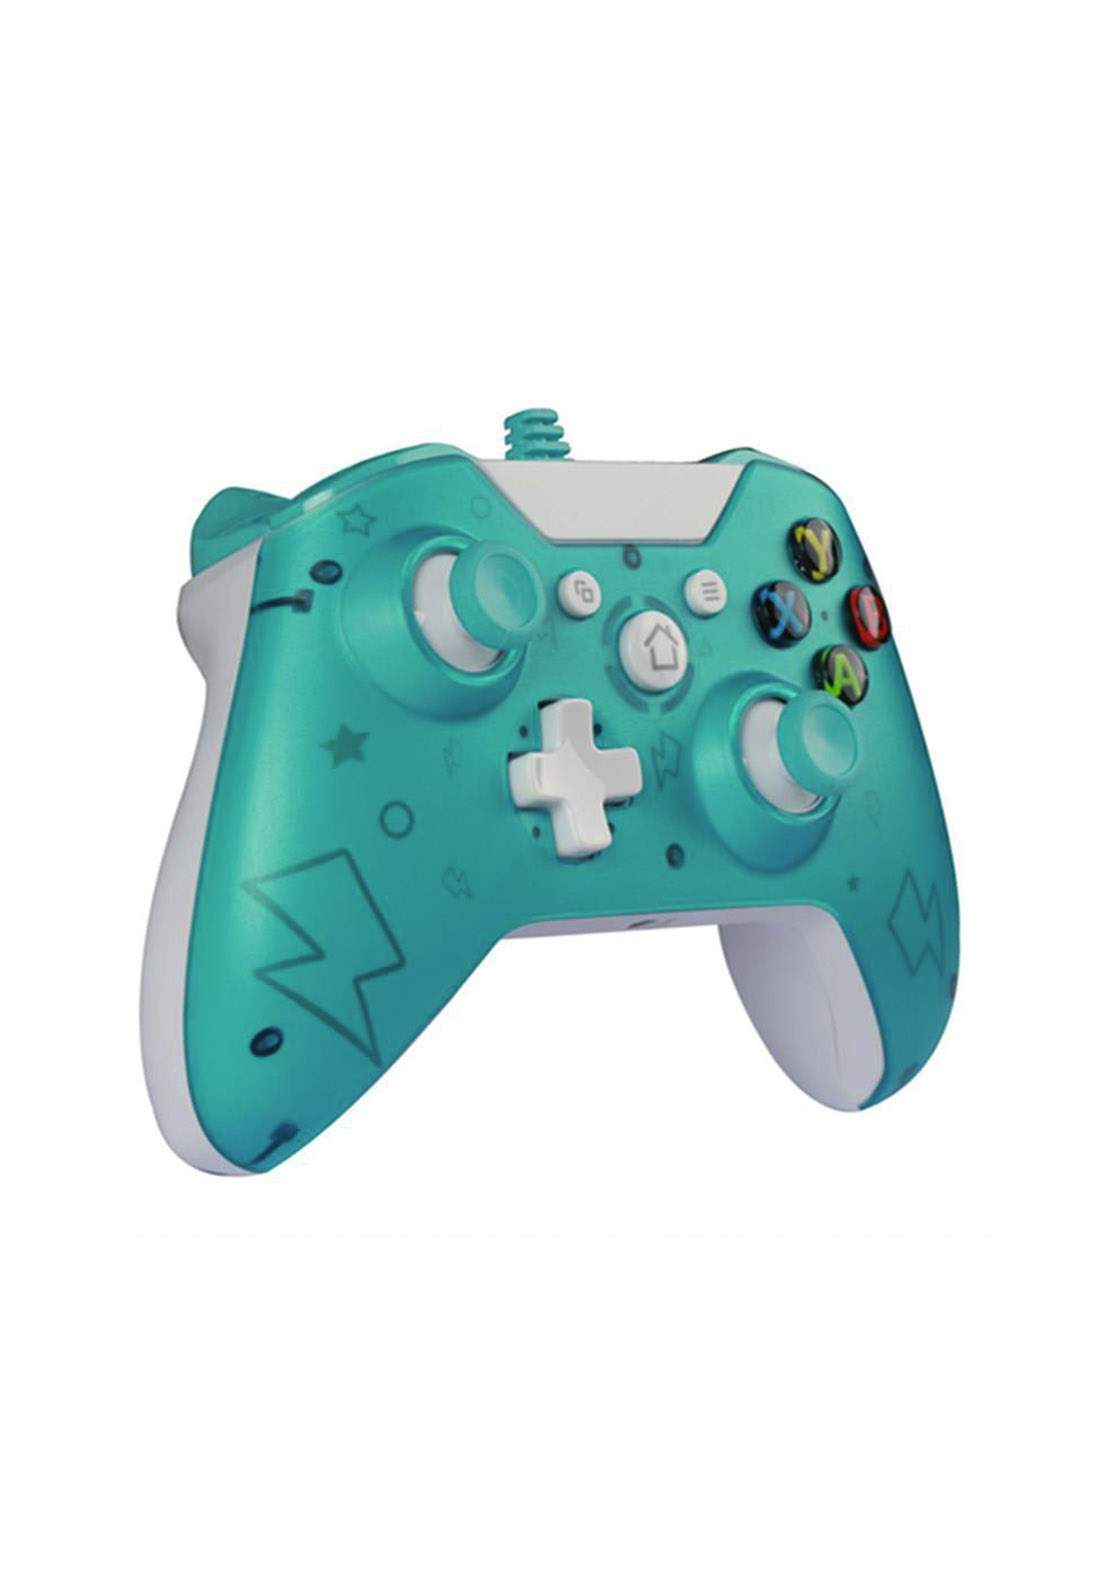 N1 Wired Game Controller for Xbox One وحدة تحكم